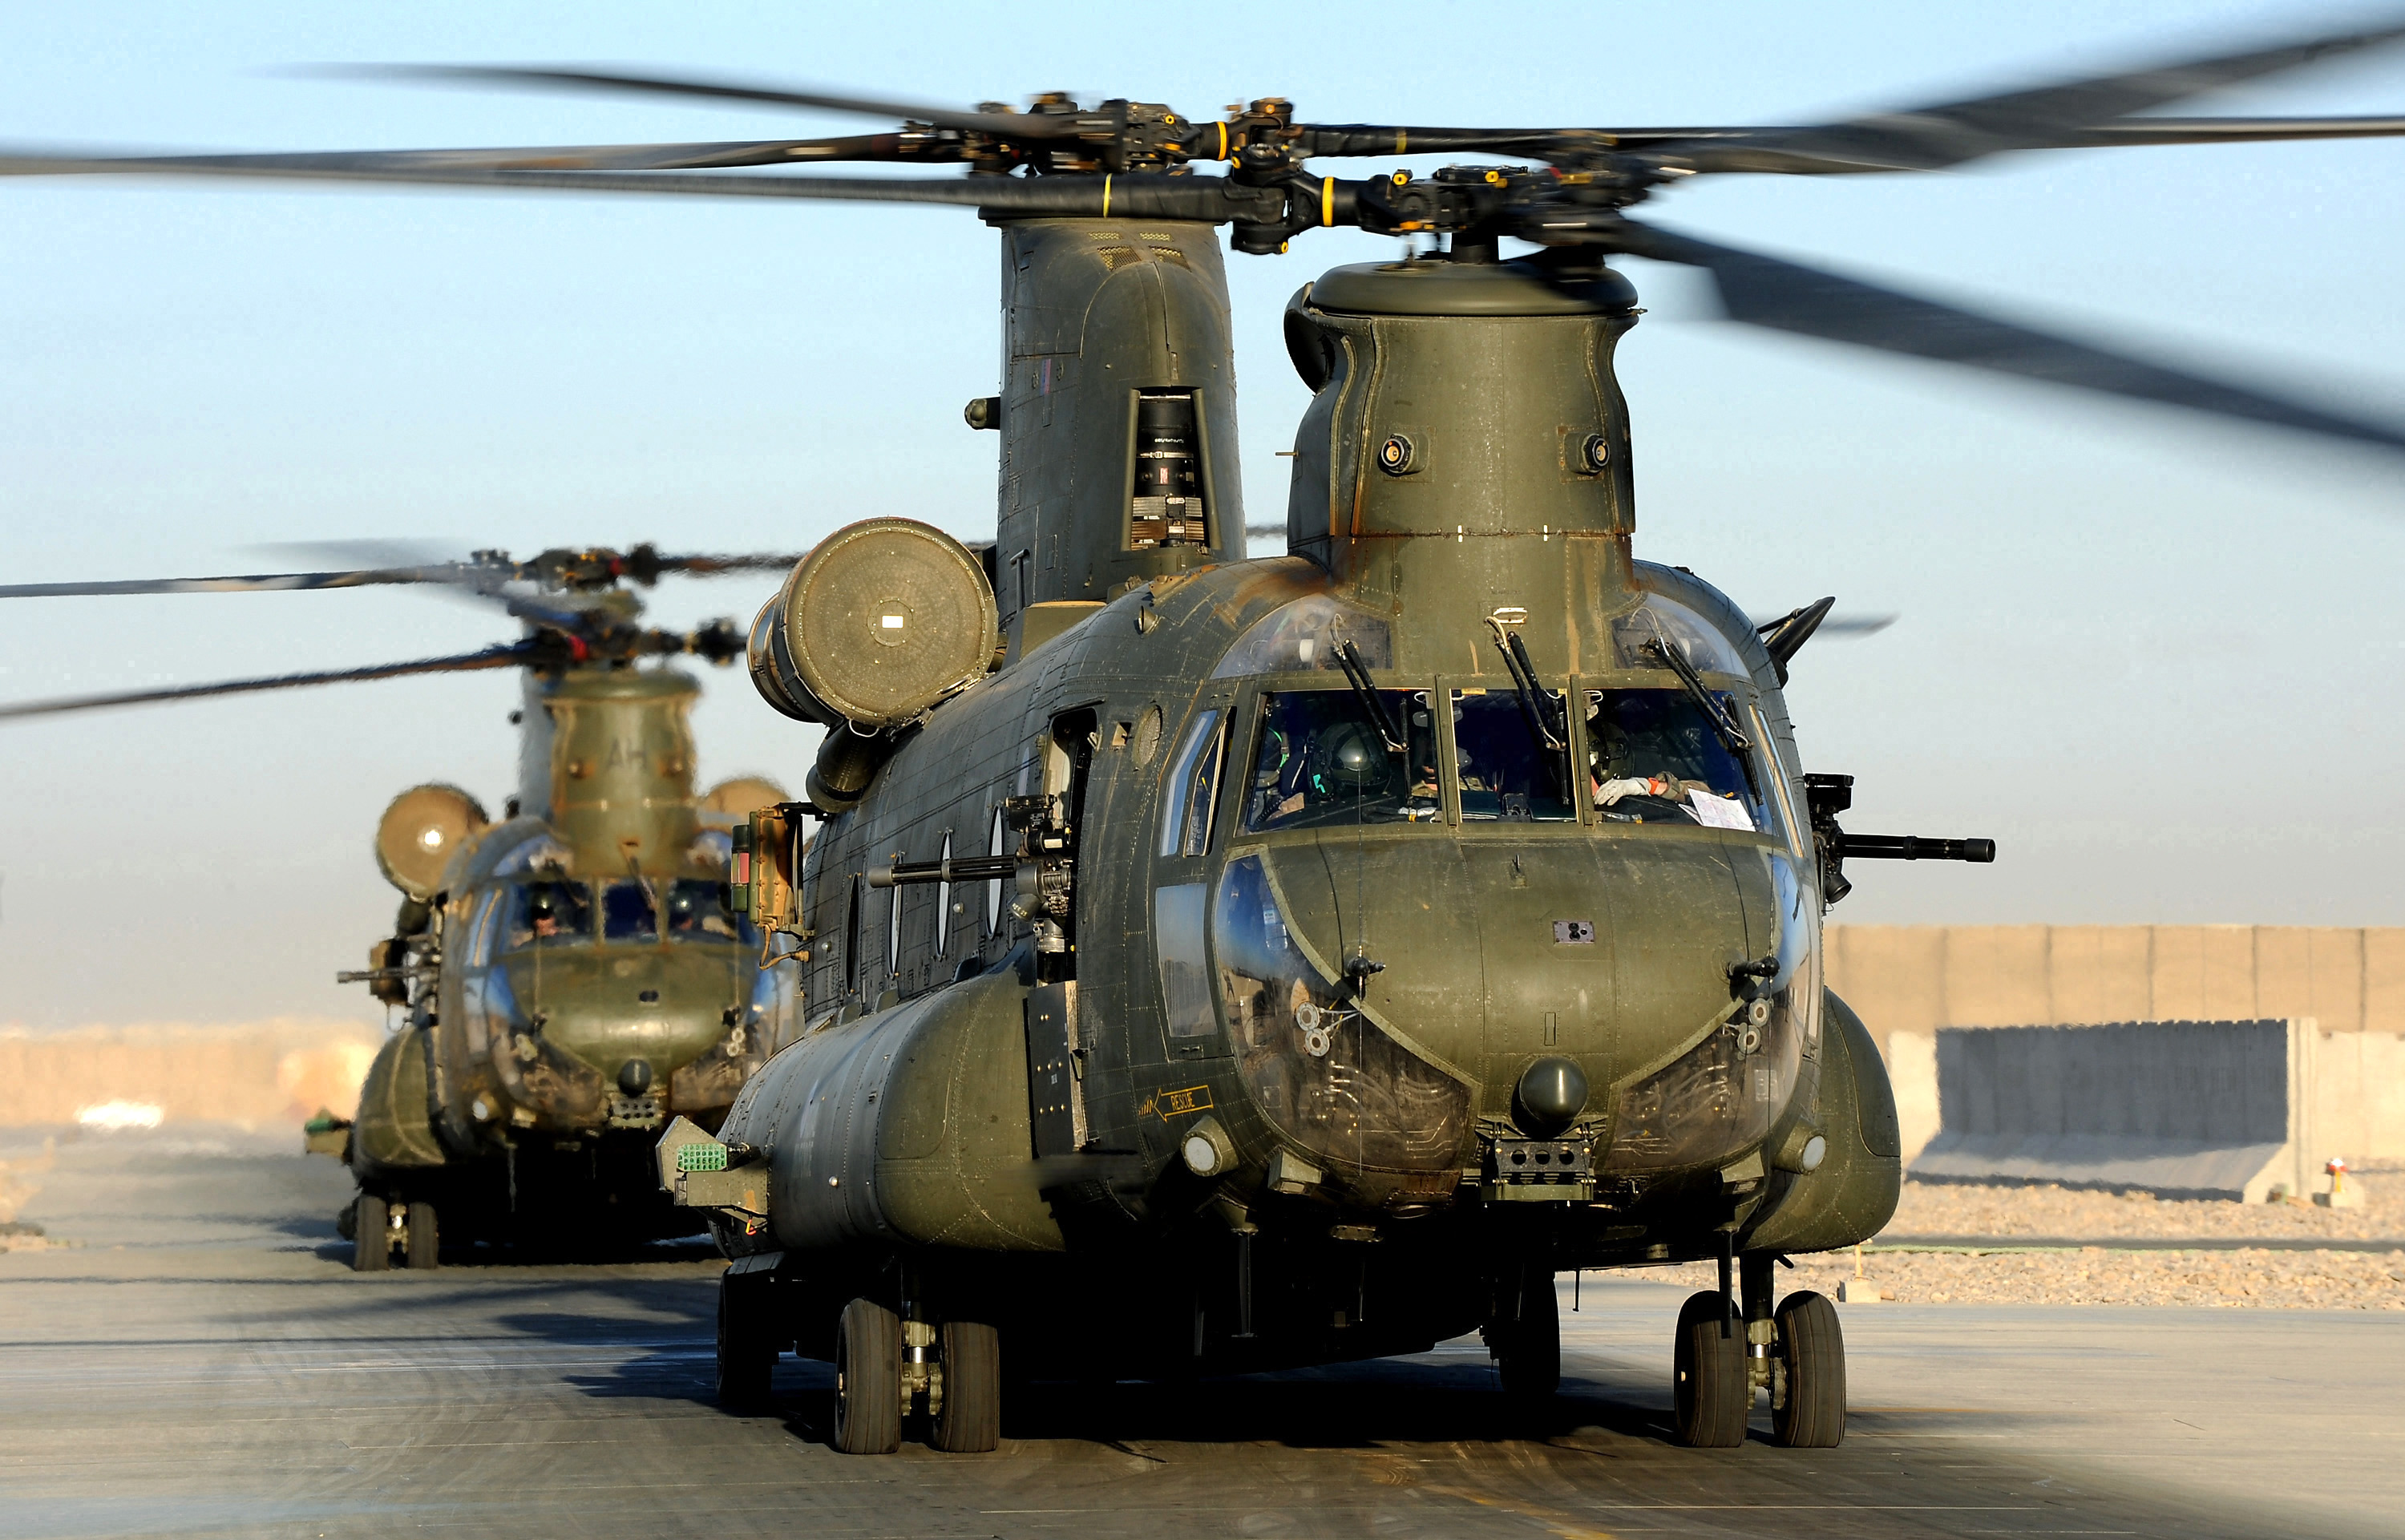 uk helicopters with File Chinook Helicopters Preparing For Take Off From C  Bastion Airfield  Afghanistan Mod 45153328 on Type 26 And Modern European Frigates as well Mi 24 007 in addition Boeing Ah 64d Apache Longbow as well 002 moreover Stornoway.